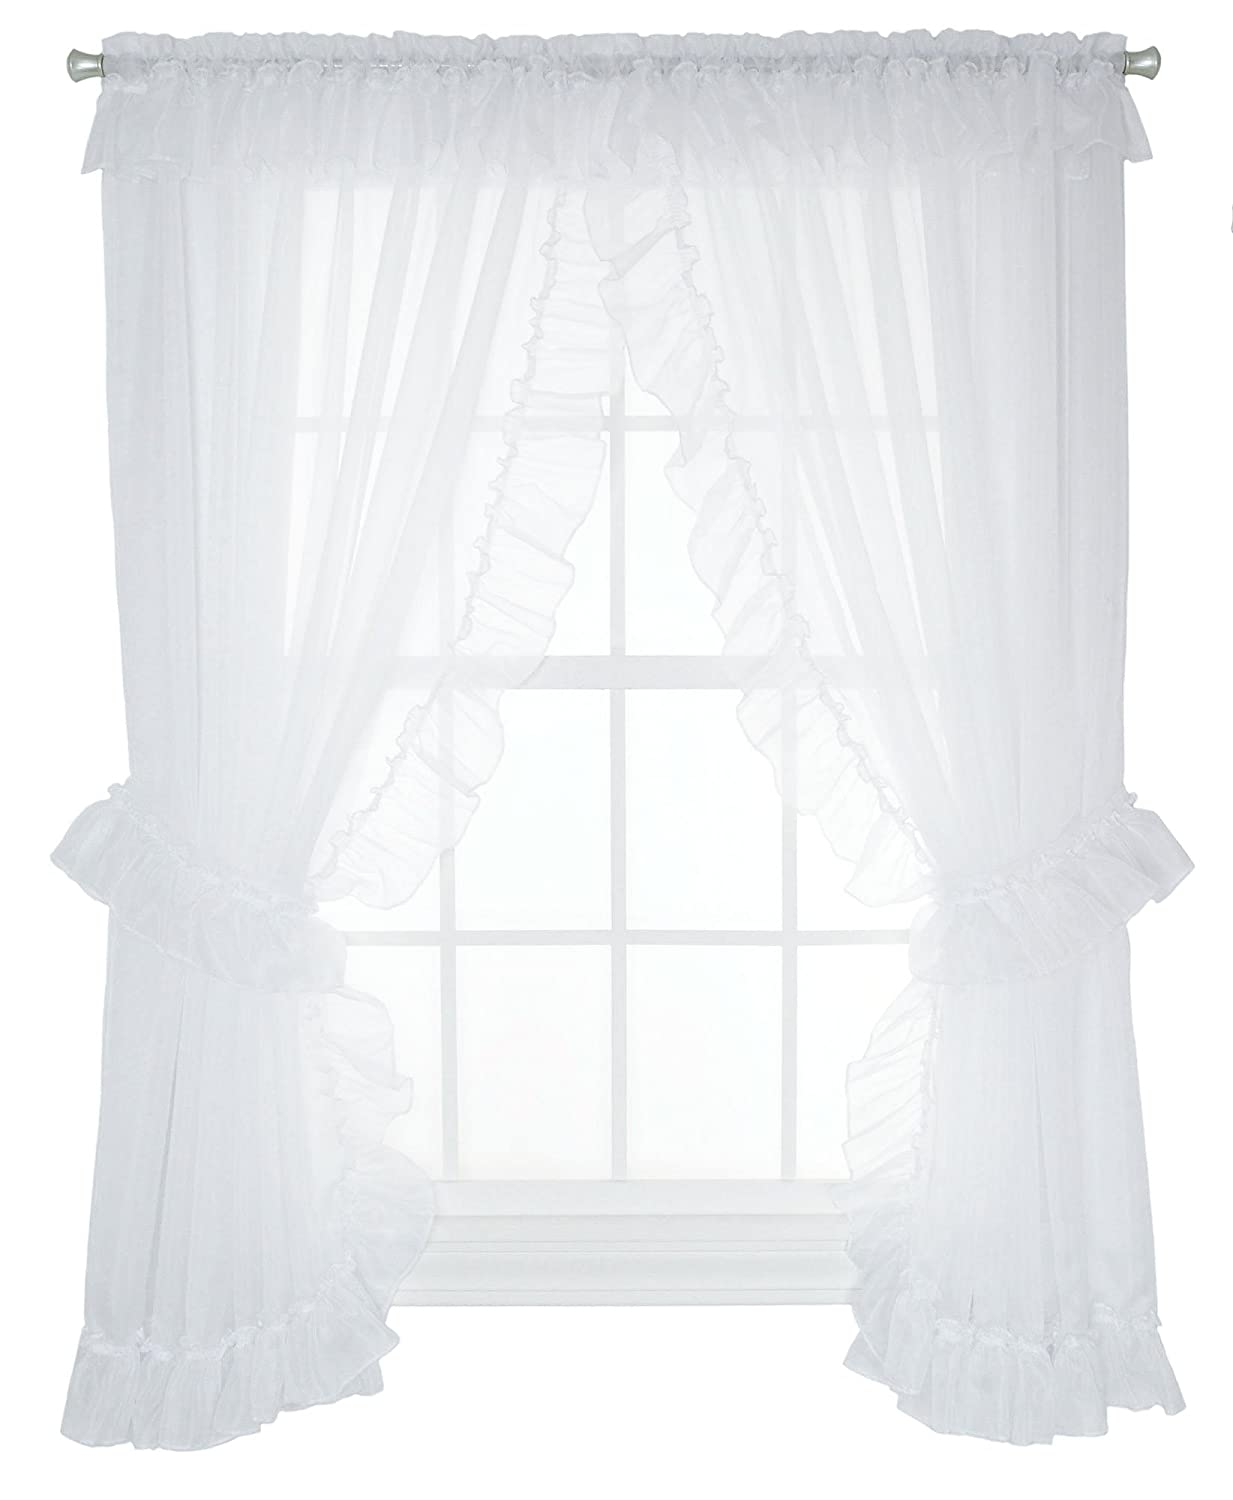 Ellis Curtain Jessica Sheer Ruffled Priscilla Pair Curtains with Ties, 100 by 84-Inch, White